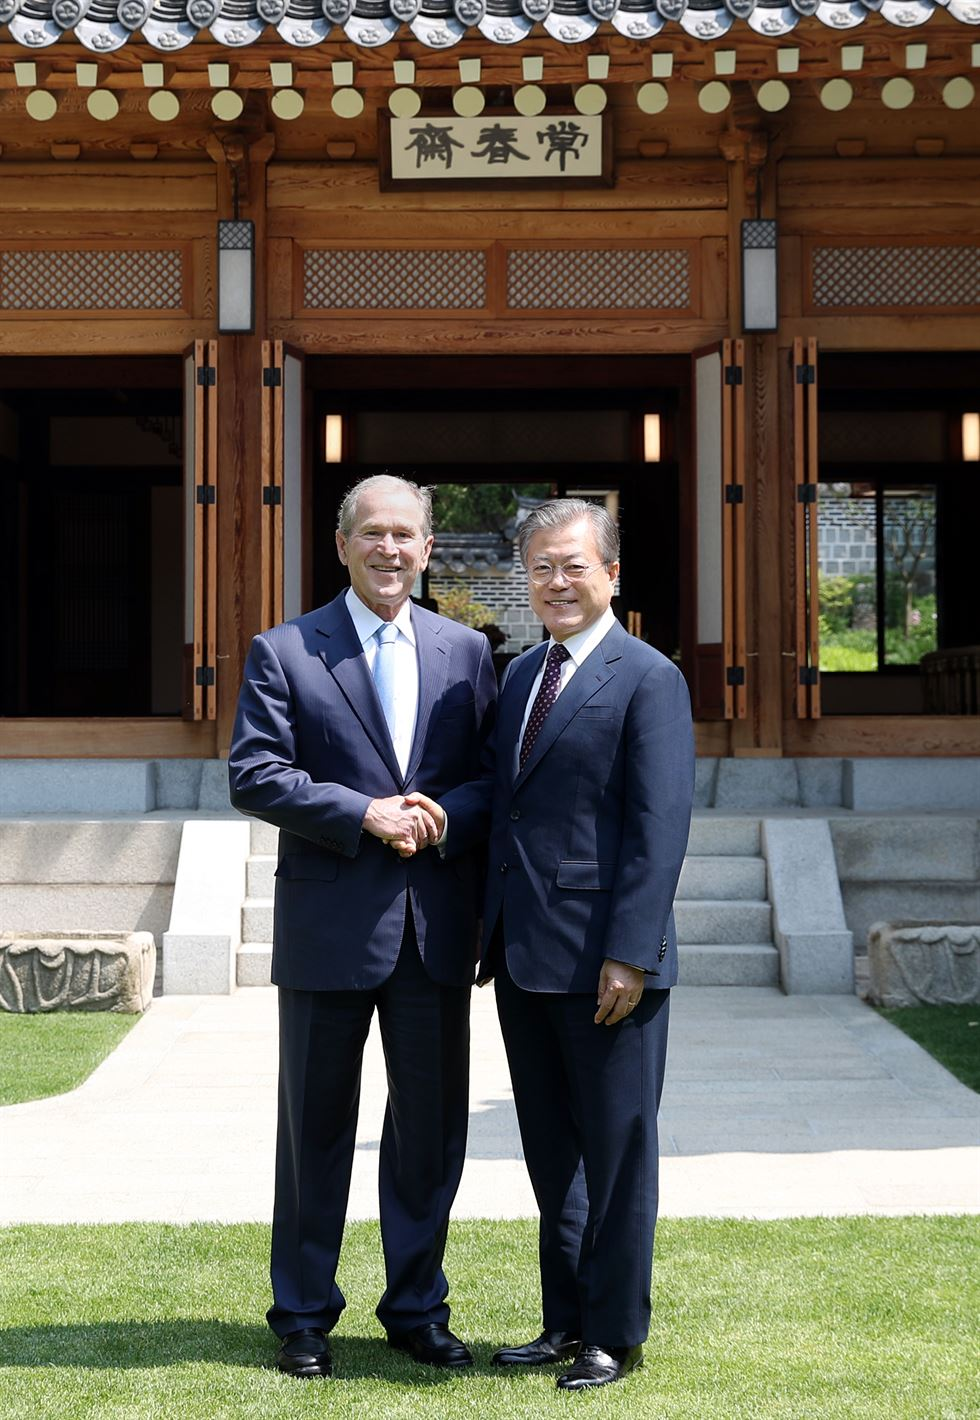 President Moon Jae-in, left, and former U.S. President George W. Bush at Cheong Wa Dae in Seoul, Thursday. Bush visited South Korea to attend the memorial service for former President Roh Moo-hyun. Yonhap